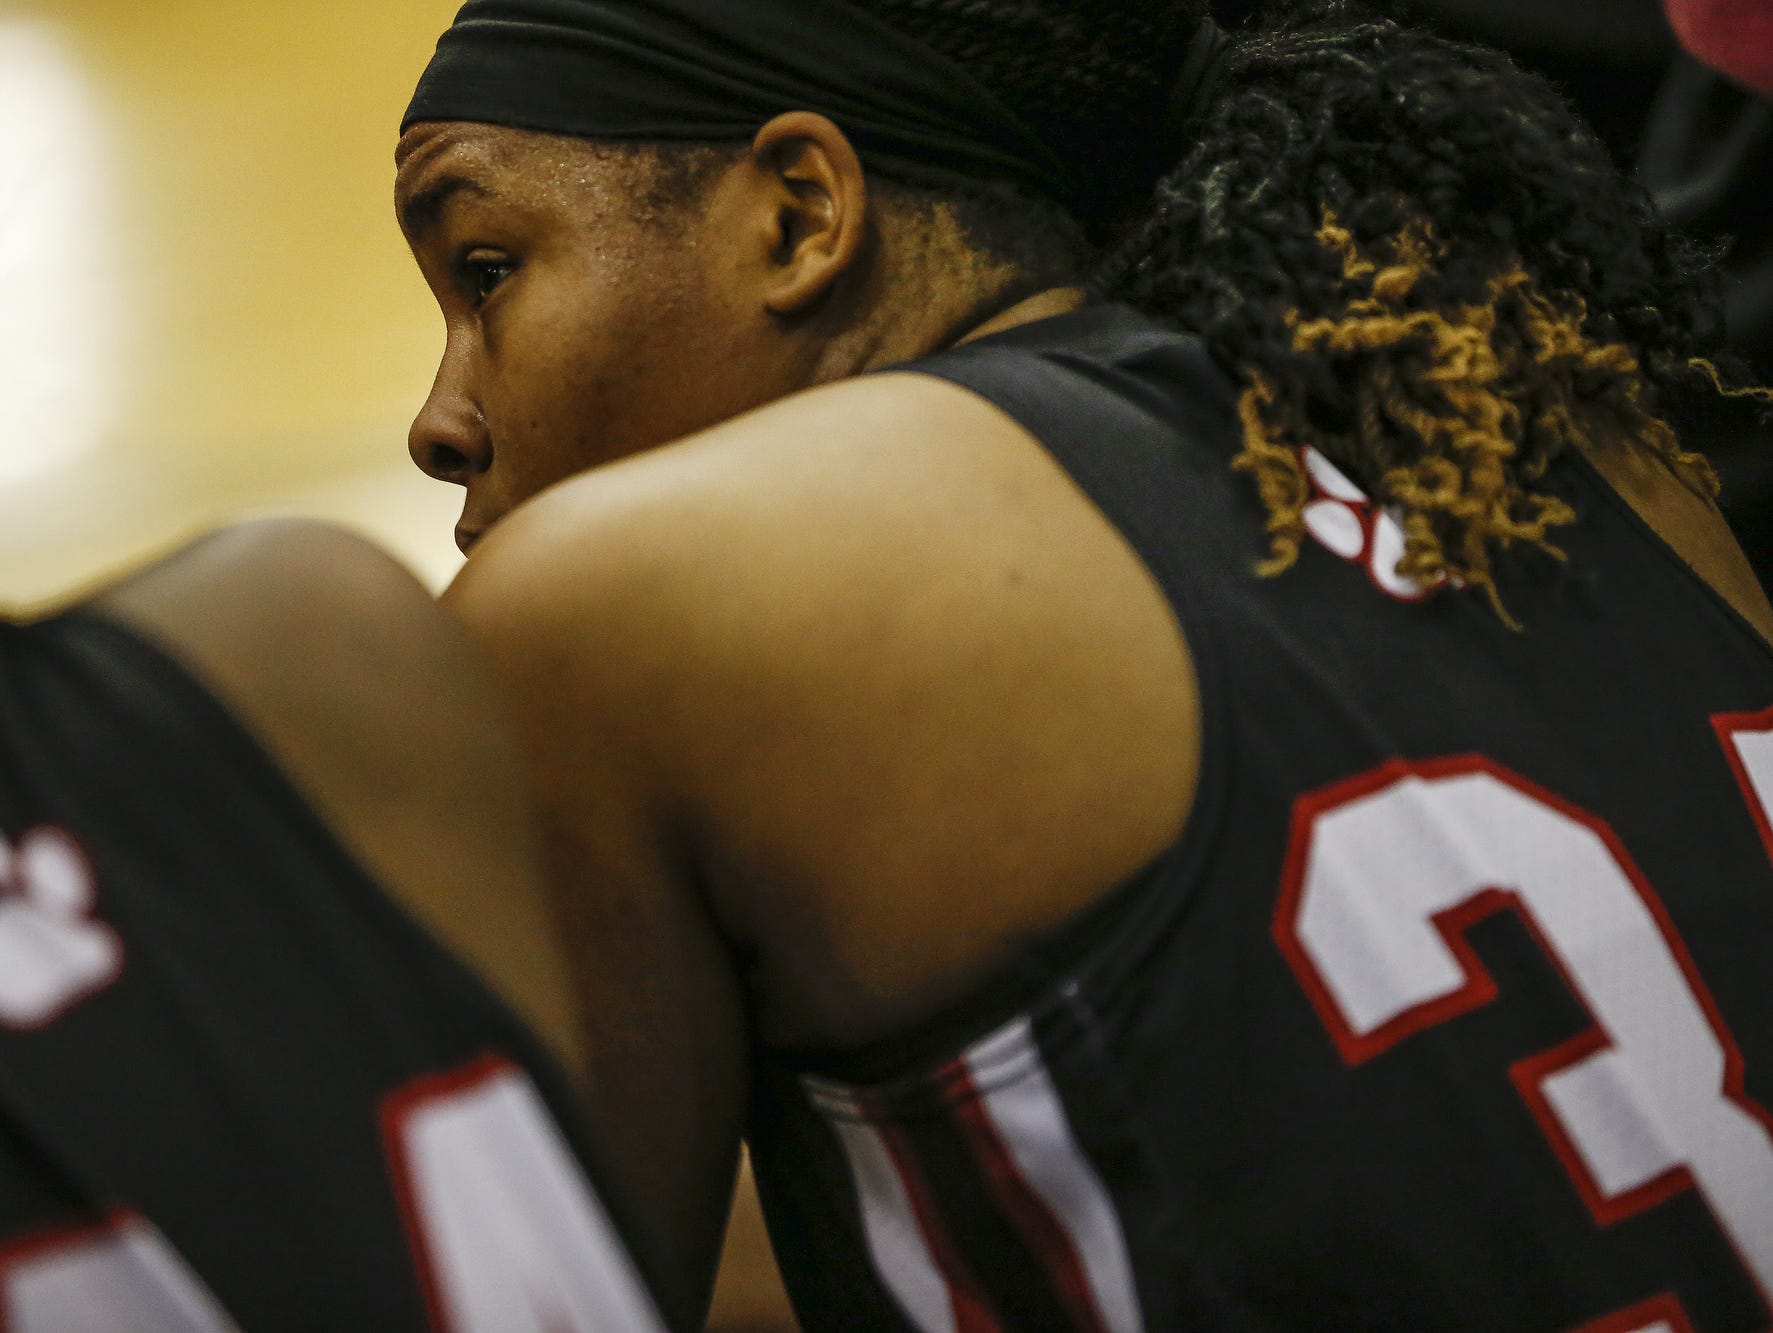 North Central Panthers' Ajanae' Thomas (34) listens as head coach DeeAnn Ramey talks during a timeout in a game against the Carmel Greyhounds at Carmel High School on Friday, Dec. 16, 2016.